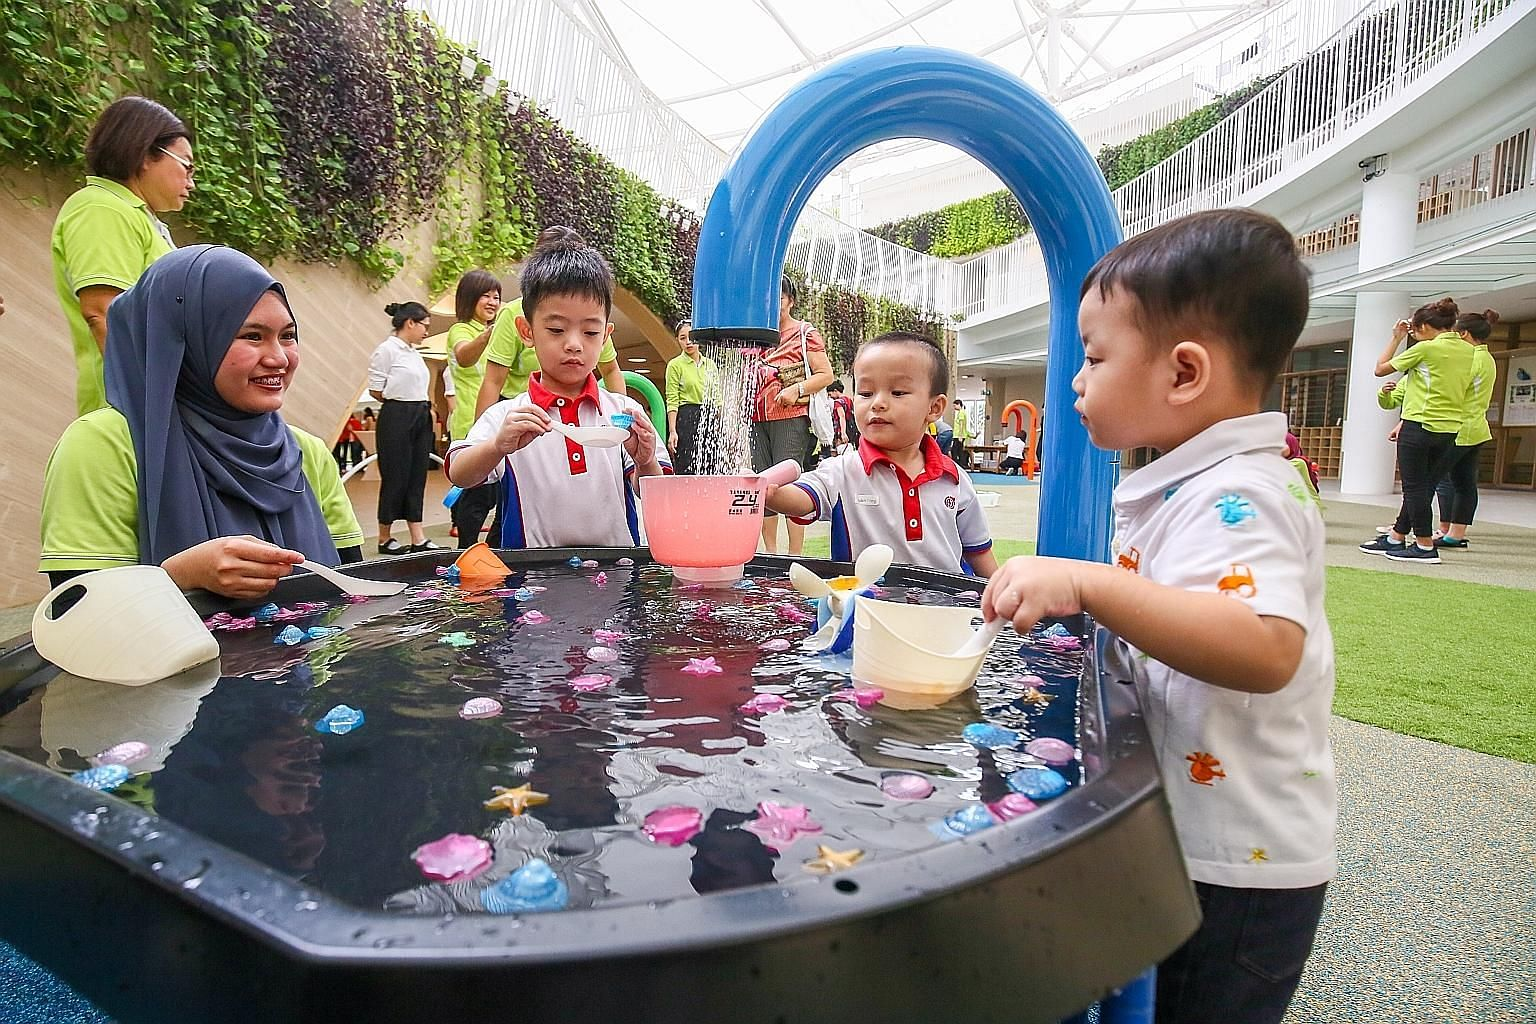 A PAP Community Foundation Sparkletots pre-school in Punggol North. The Singapore Government has invested significantly in pre-school education as these formative years are key to a child's development, says Deputy Prime Minister and Finance Minister